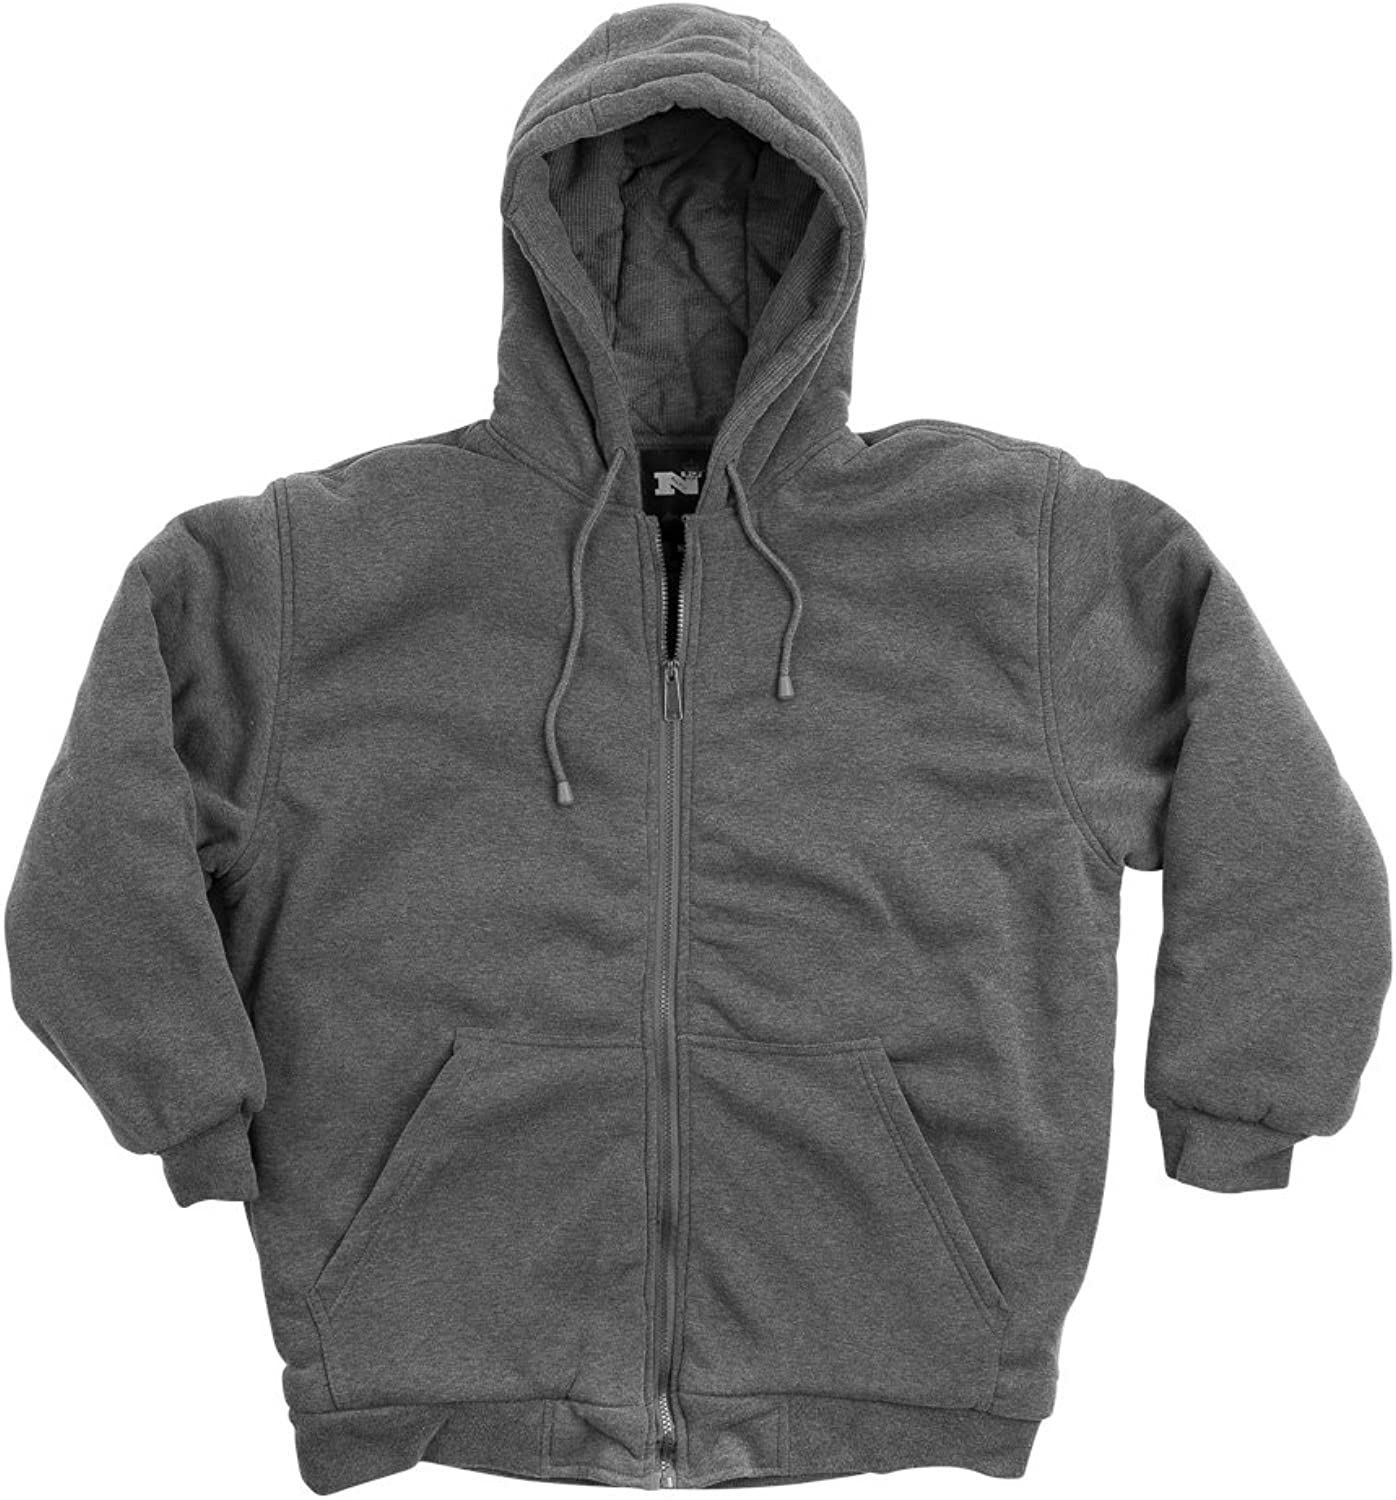 North 15 Men's Hooded Sweatshirt  DTM Quilted  Thermal Lined  Zipper Front  Medium Charcoal